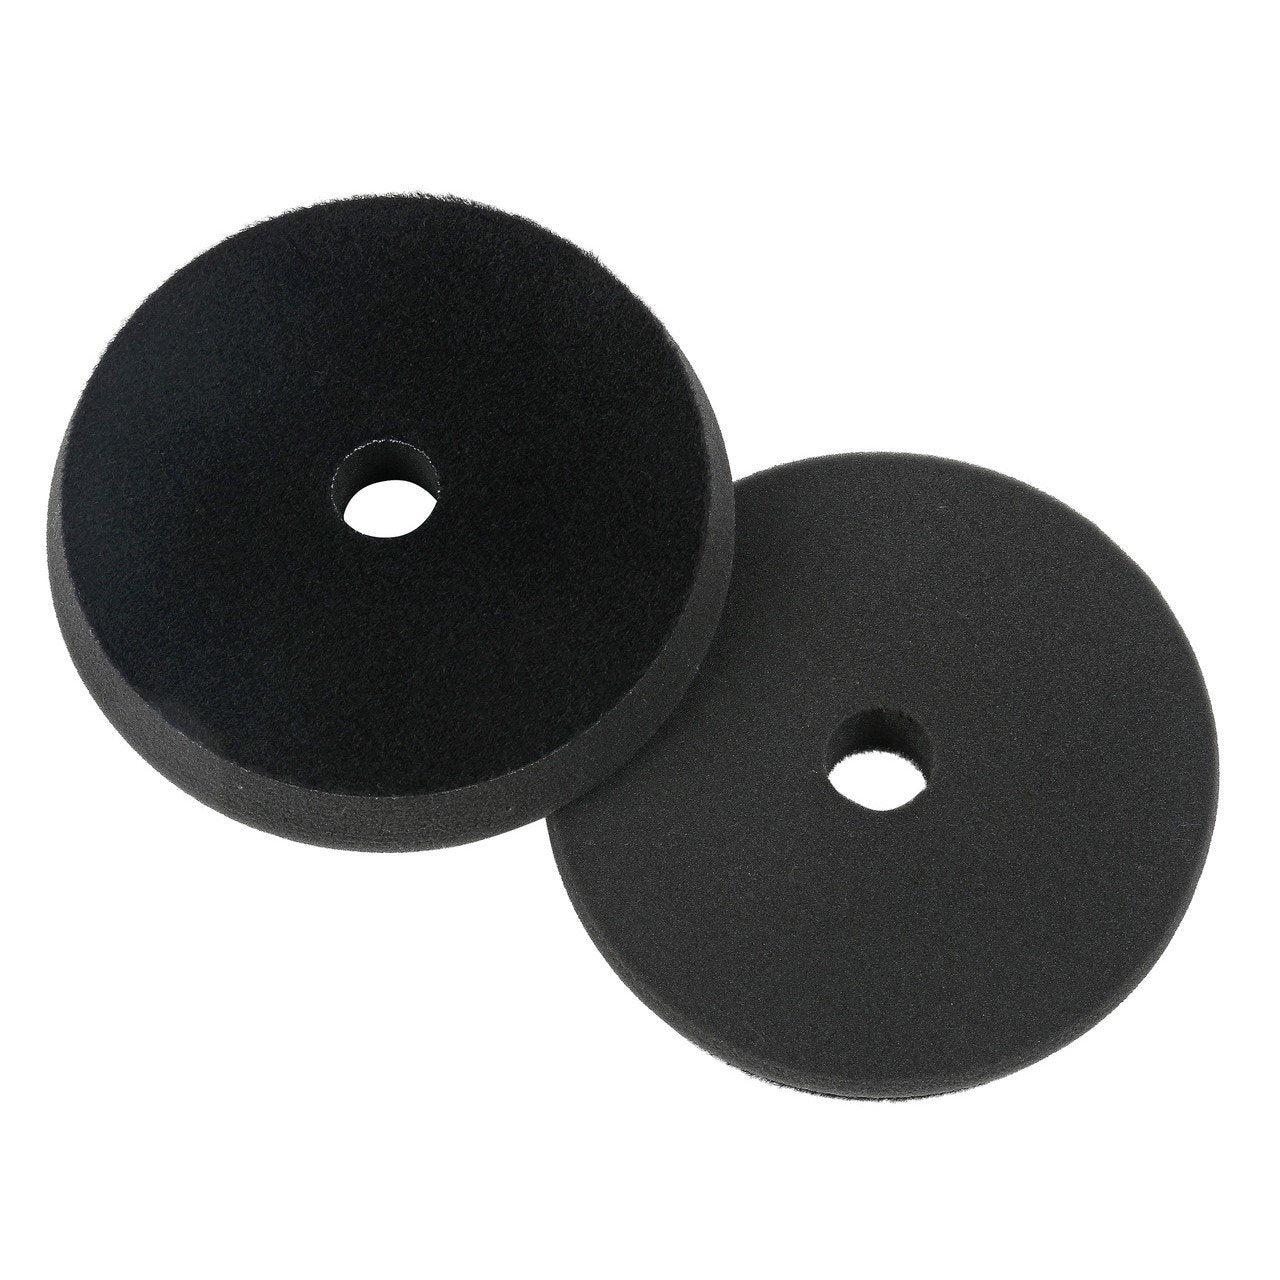 Lake Country Standard Duty Orbital Pad - Black (Finishing) (1370781679665)